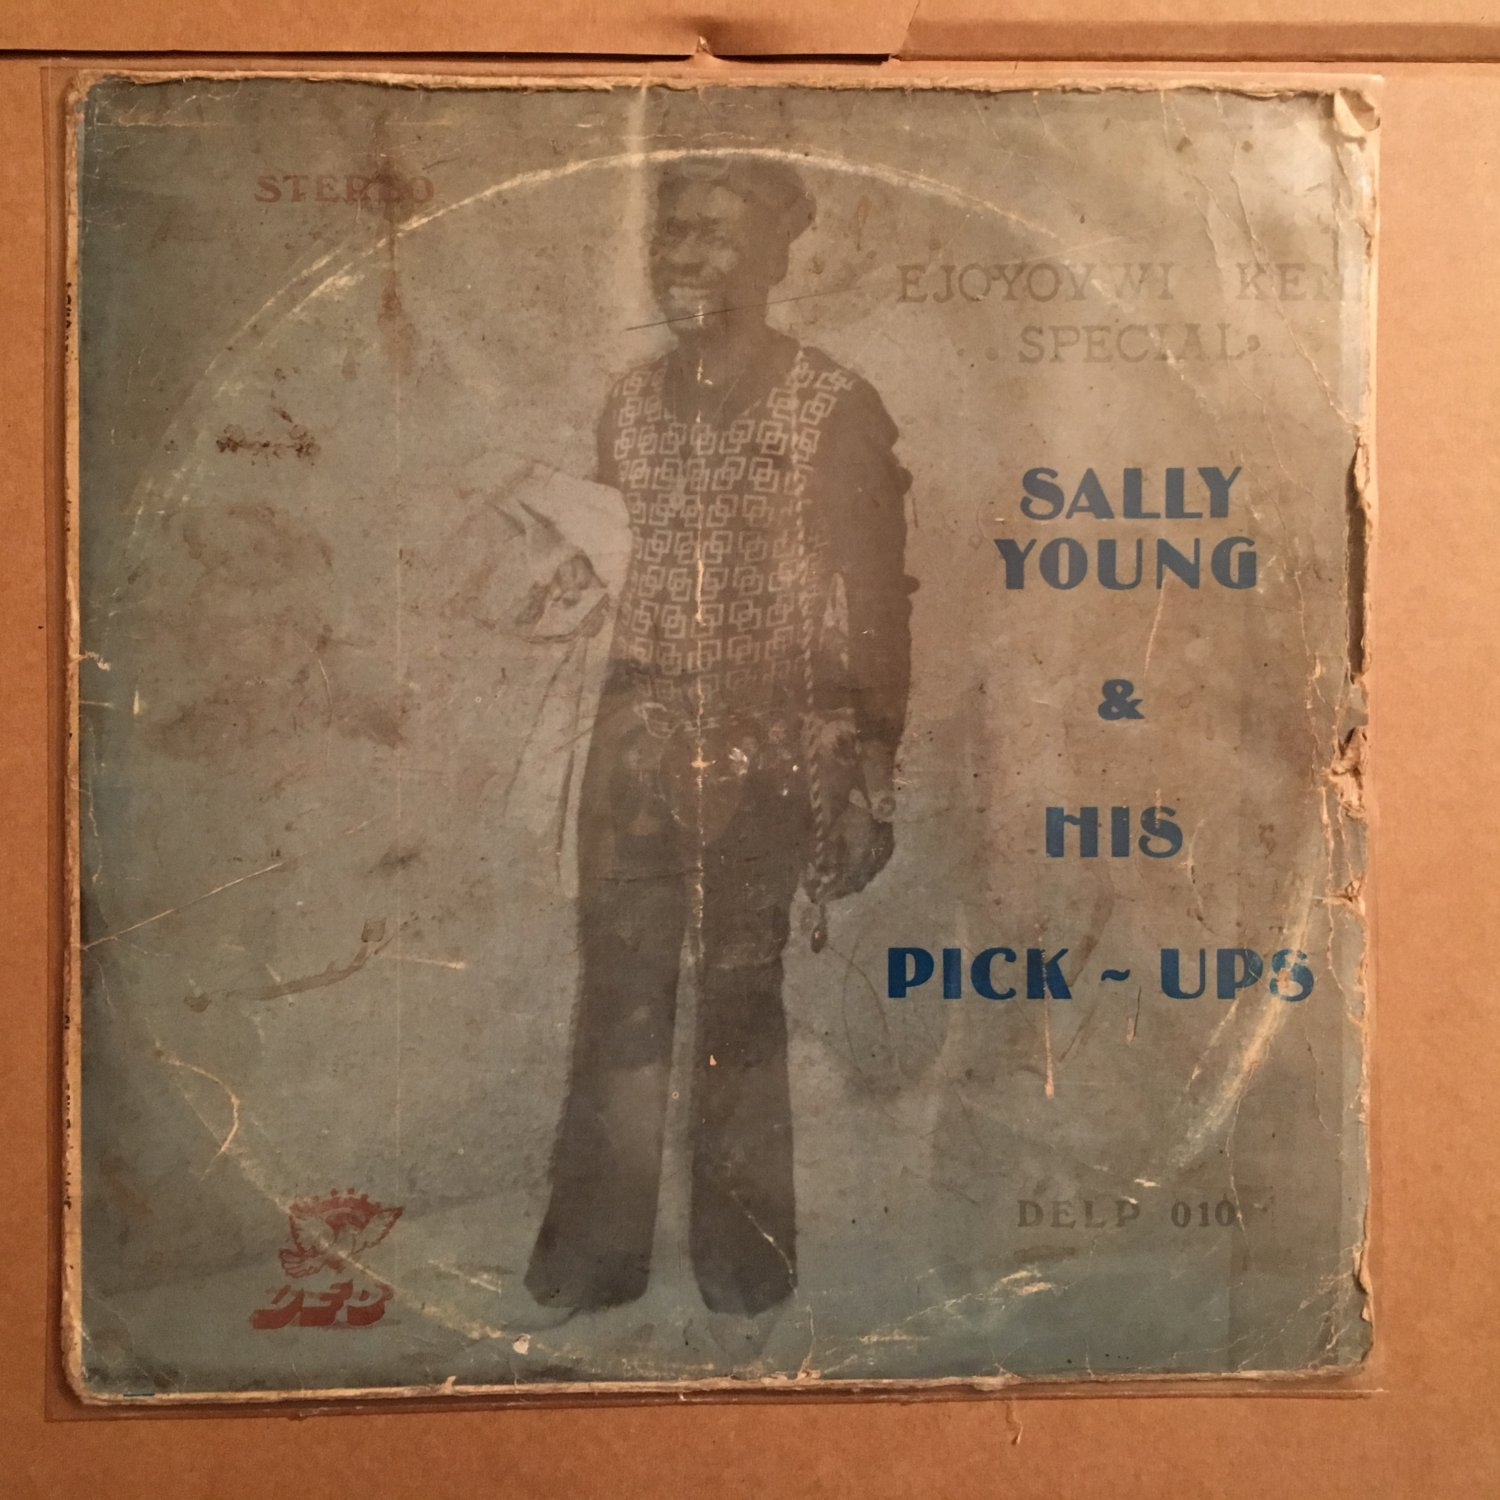 CHIEF SALLY YOUNG & HIS PICK UPS LP wejoyovwi special NIGERIA DEEP HIGHLIFE mp3 LISTEN